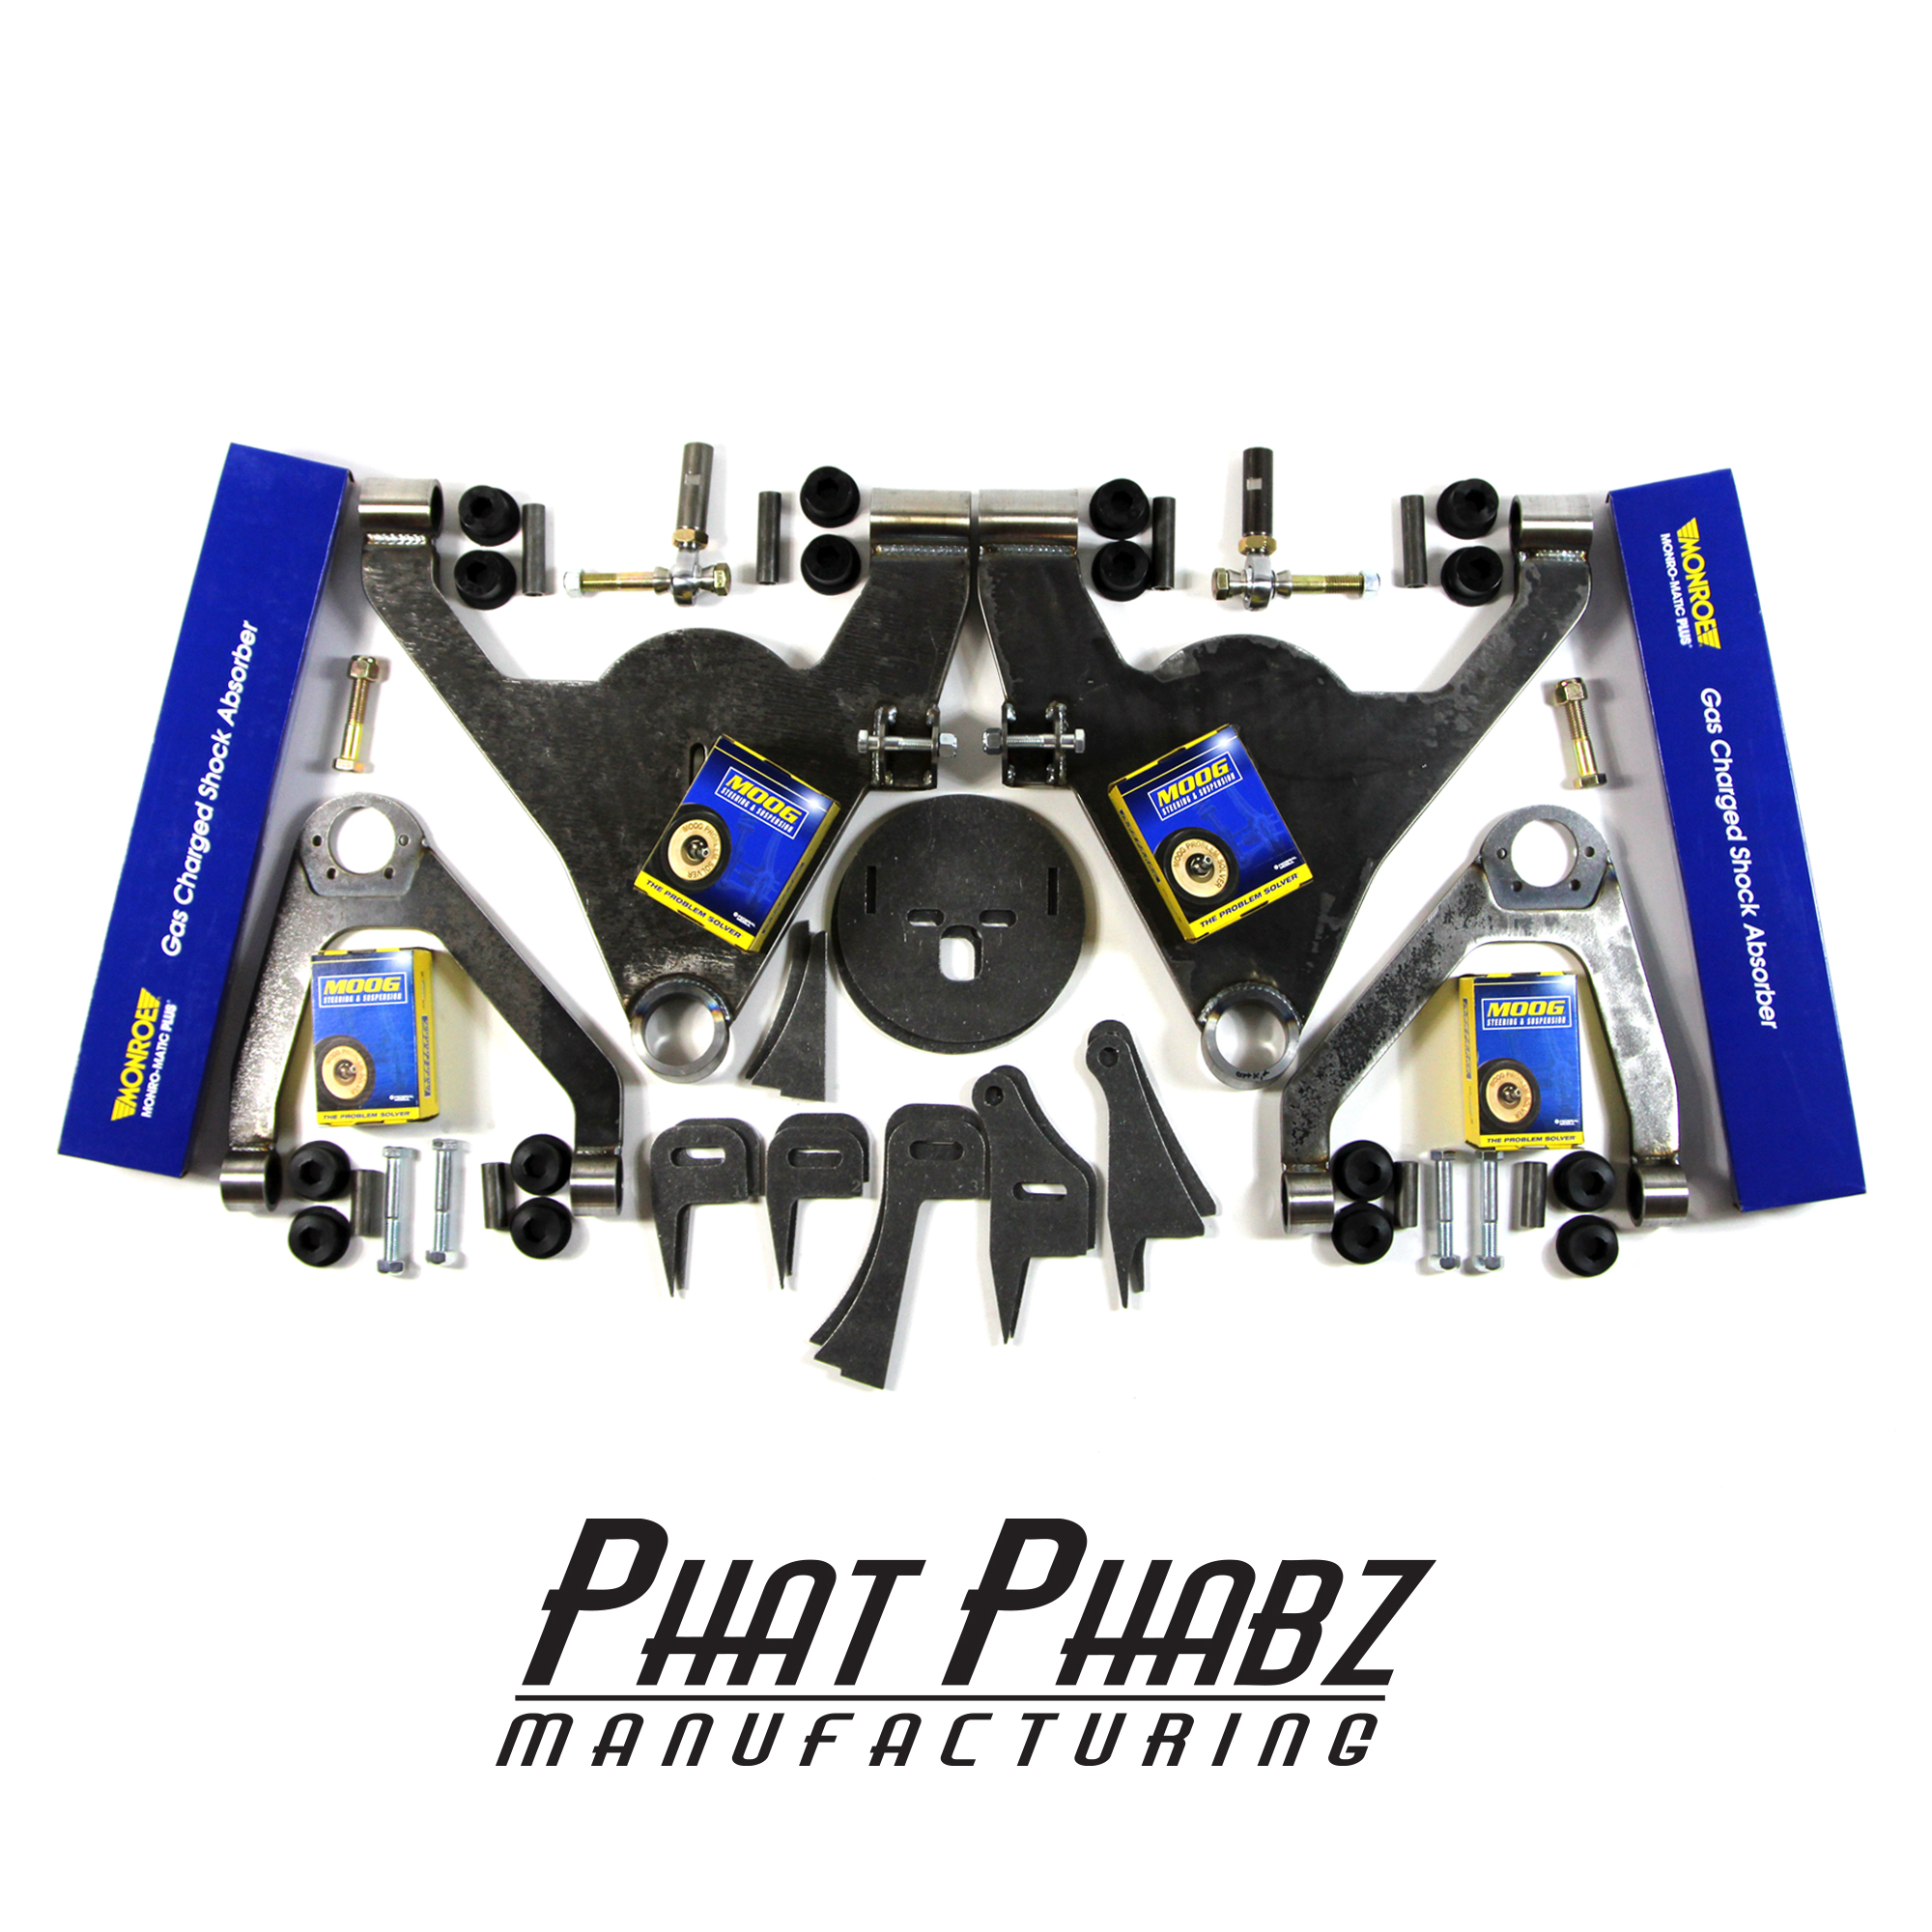 "PHA 1003 Phat Phabz 07'- 14' Tahoe/Yukon Front Kit Features a 1"" Narrowed Track Width, Moog Ball Joints, Monroe Shocks, W/ Steering Kit with 3/4"" Chromoly Heims ** Will lay 22""-28"" wheel ** Price includes $100 spindle core charge **"